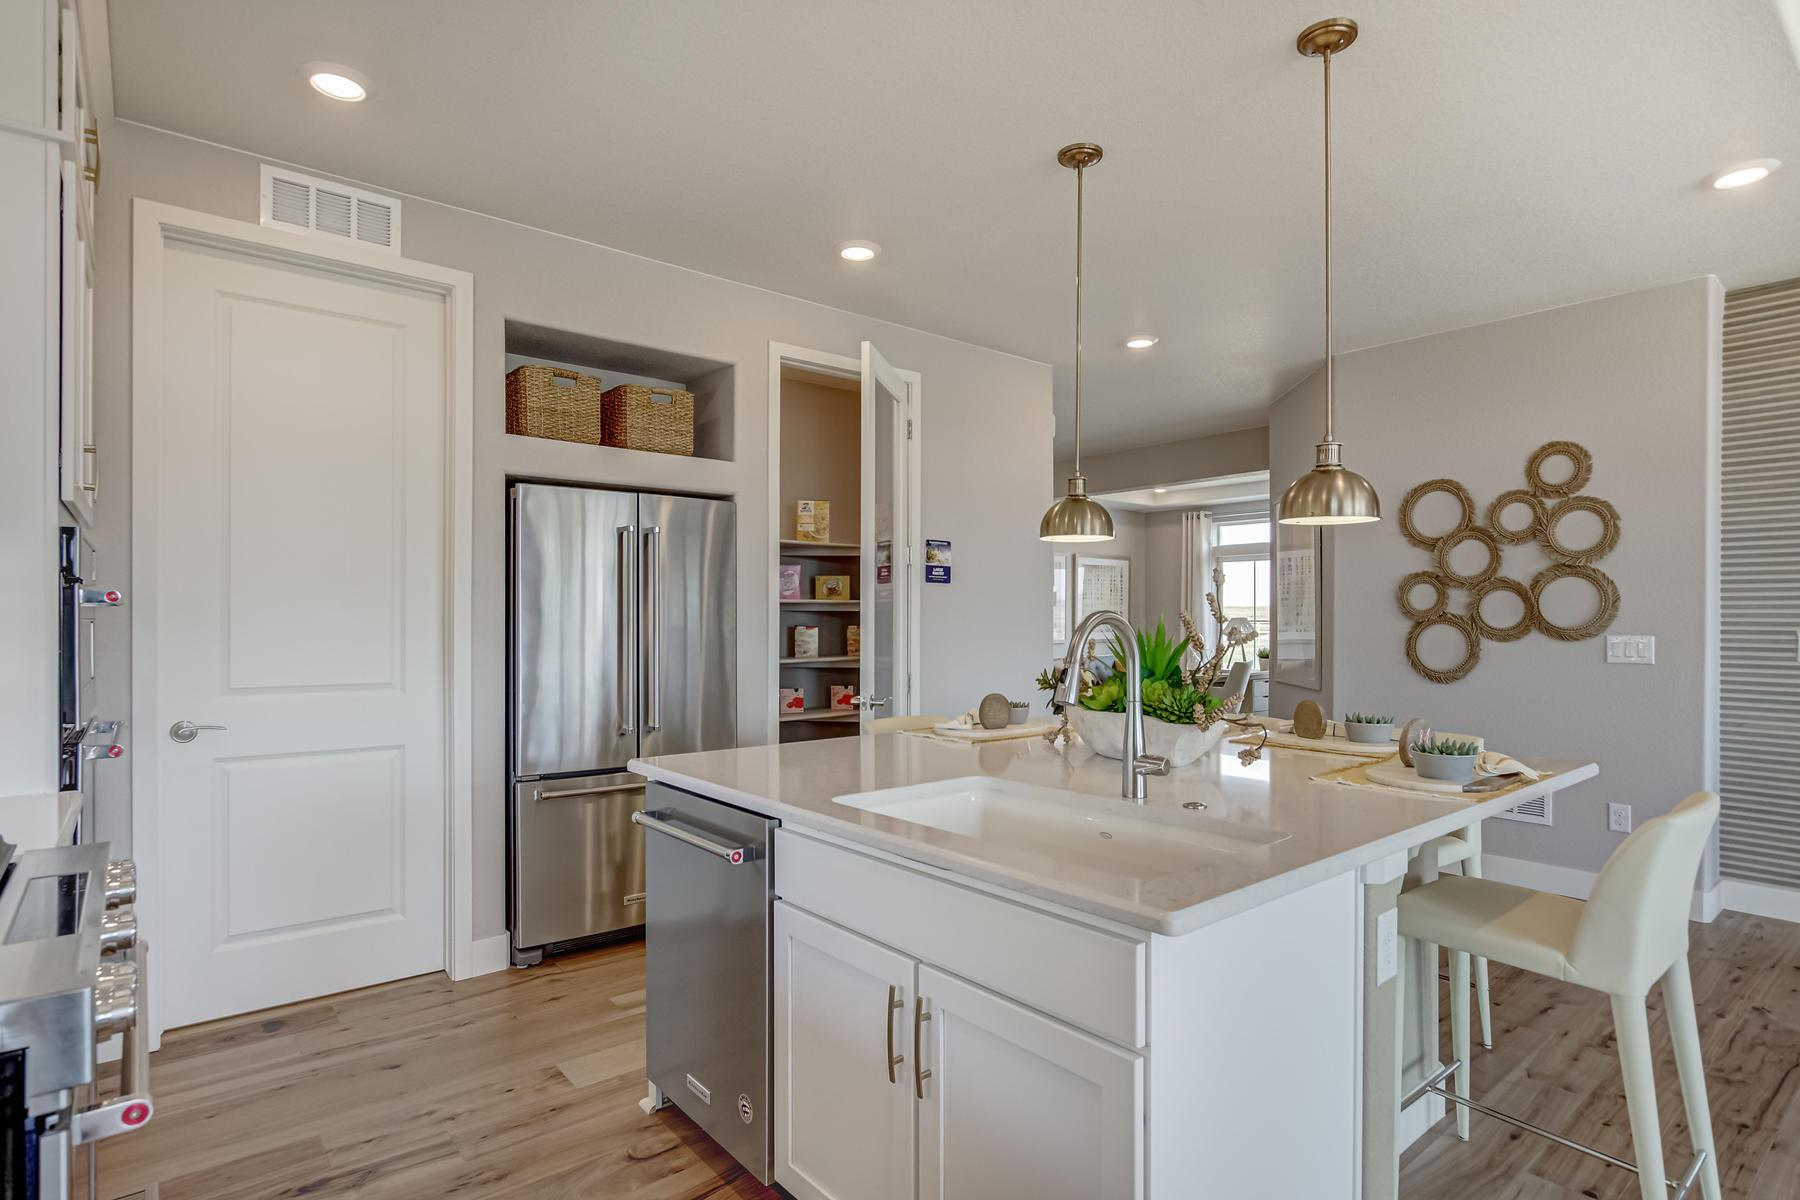 Kitchen featured in the Harbor By OakwoodLife in Denver, CO